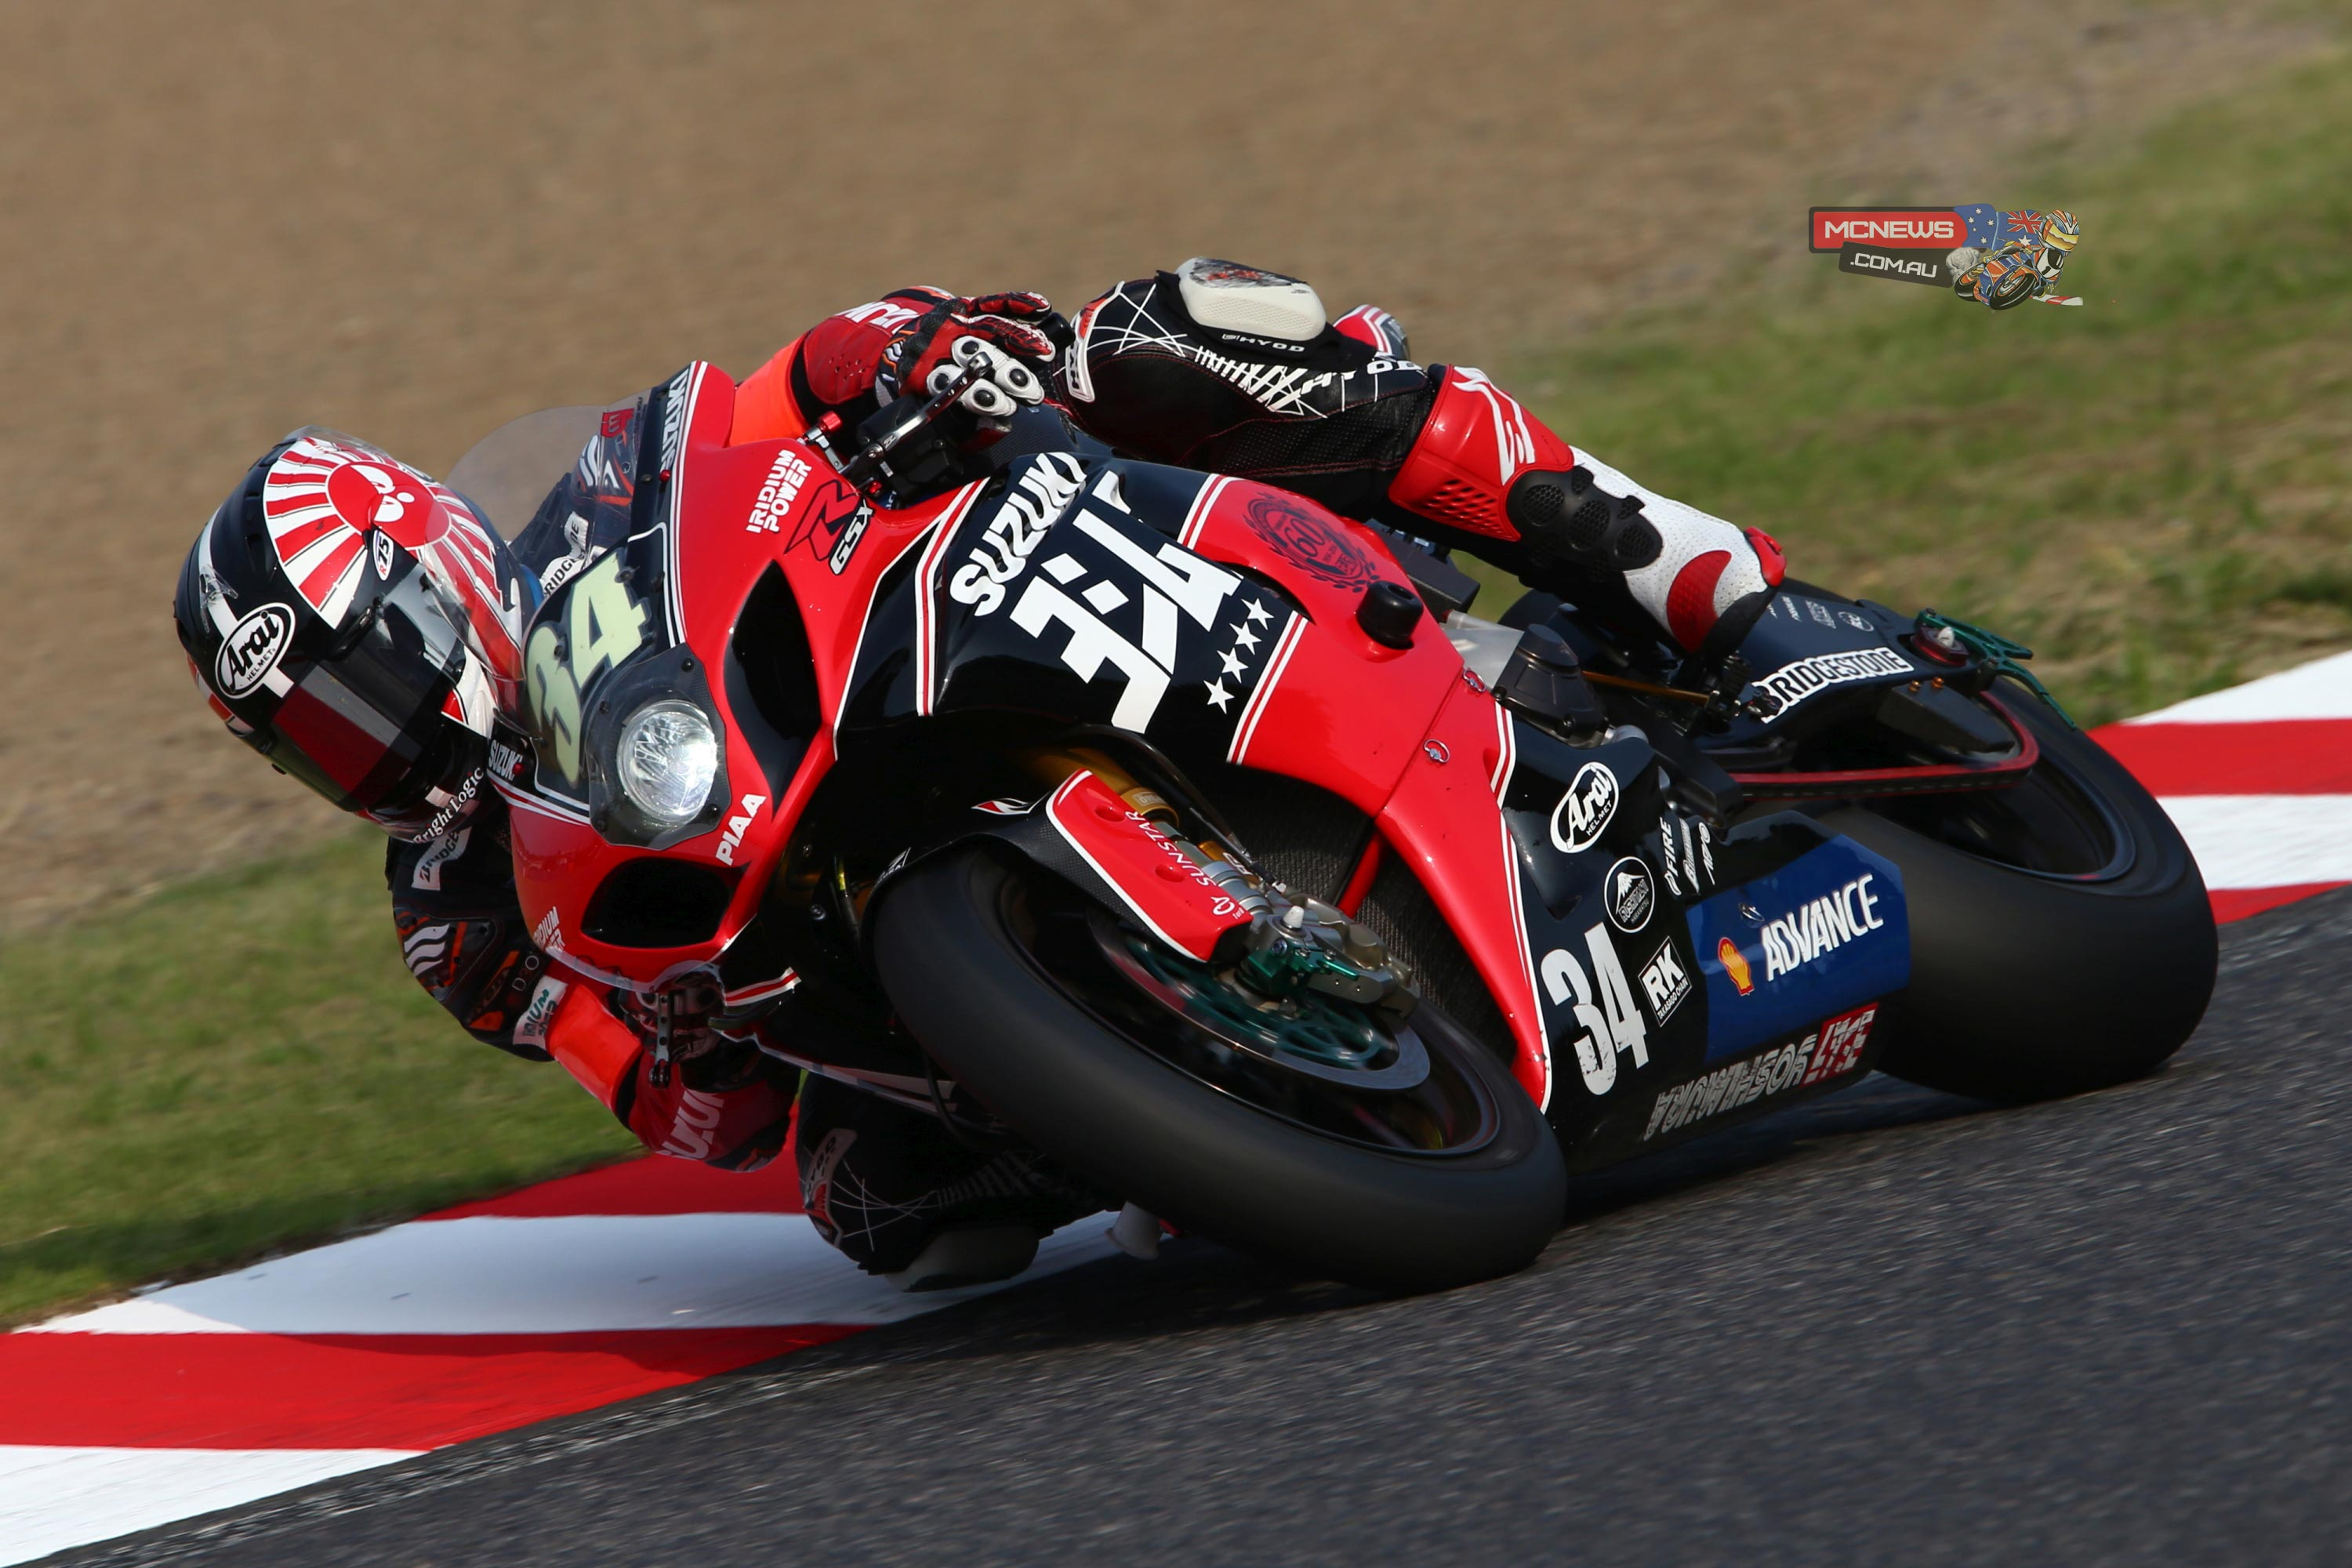 Yoshimura Suzuki Shell Advance team rider Takuya Tsuda – who was paired with fellow Suzuki MotoGP Test Team rider Randy De Puniet and Josh Waters – set a blistering time of 2'06.703 around the 5.821km circuit on the #34 GSX-R1000 beating the previous record of 2'06.817 set by Monster Energy Yamaha's Katsuyuki Nakasuga in 2012.